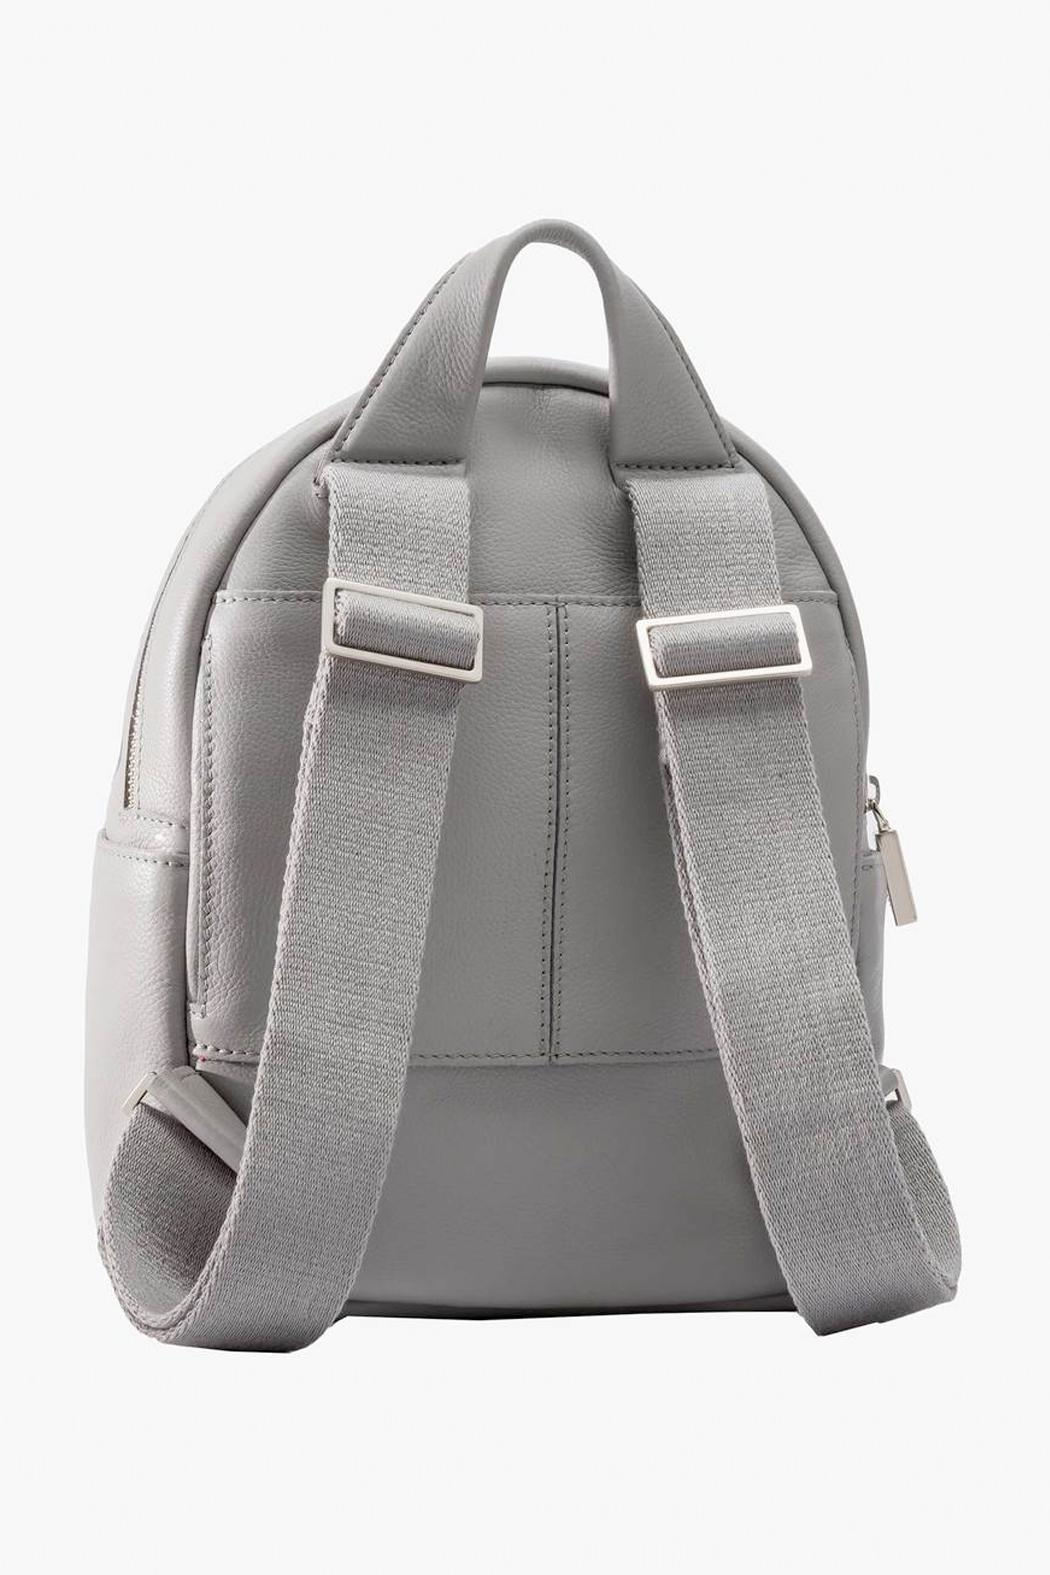 Hammitt Los Angeles Shane Leather Backpack - Front Full Image